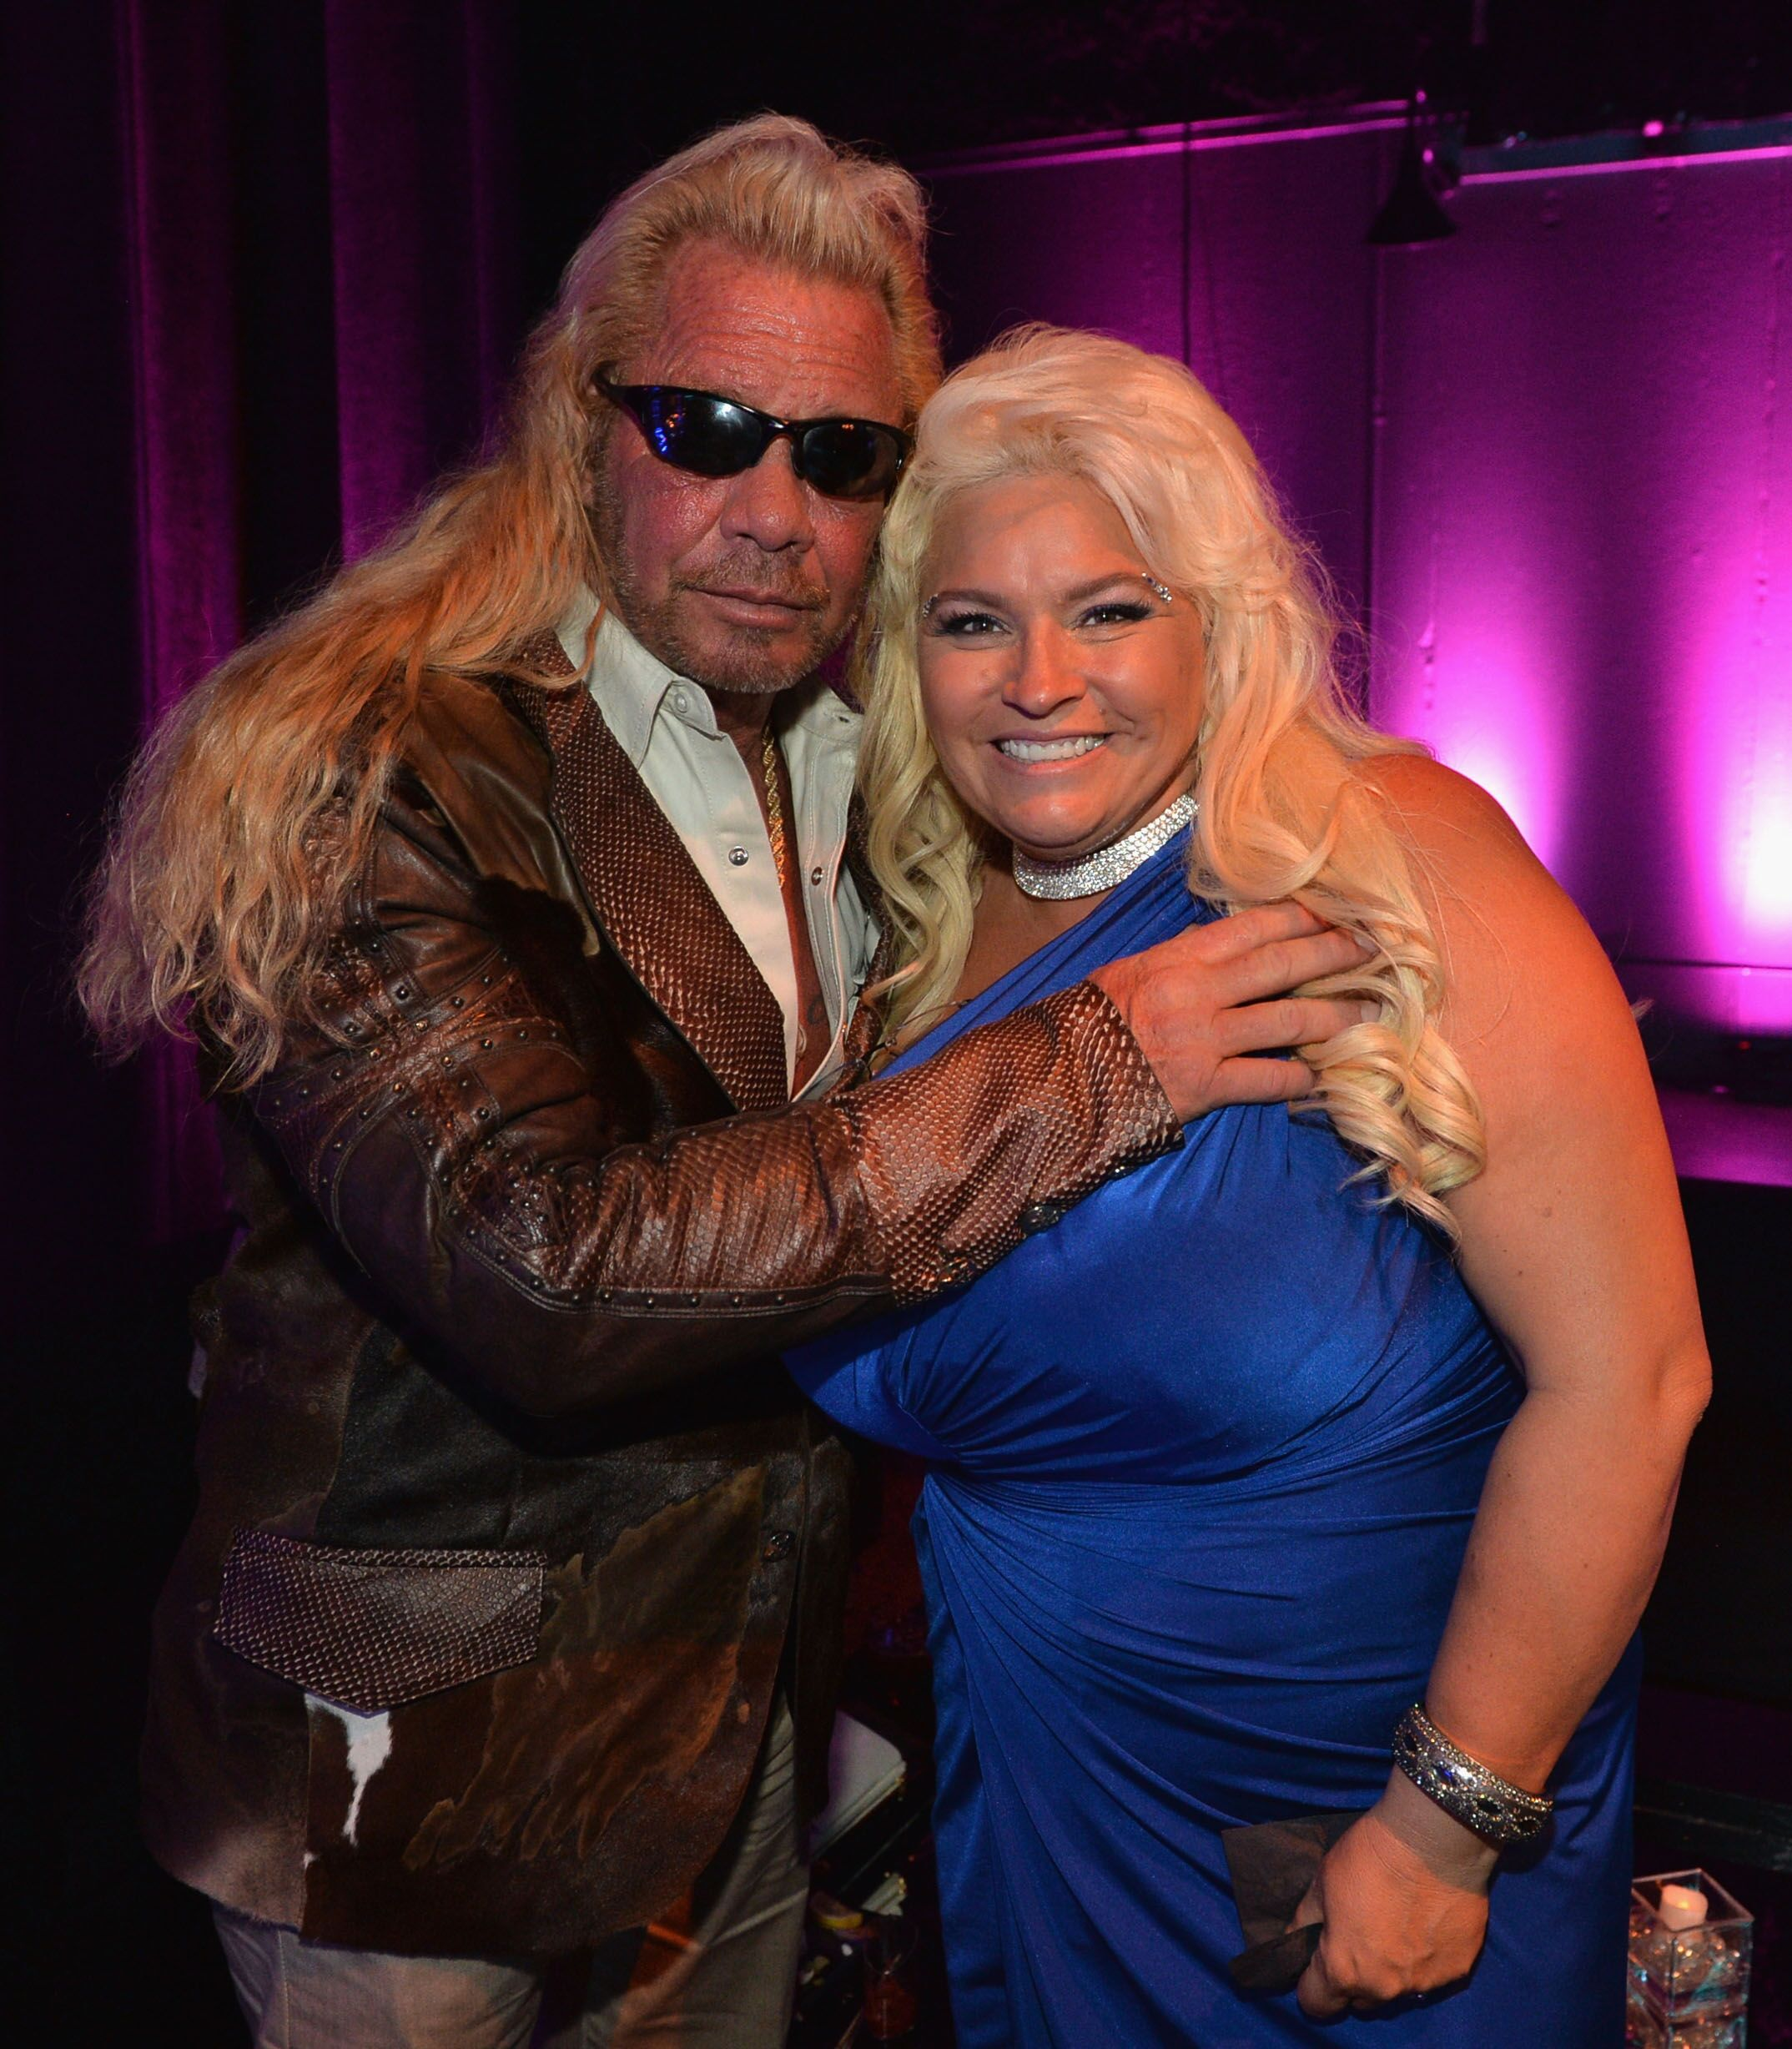 Duane Chapman and Beth Chapman attend the 2013 CMT Music Awards | Photo: Getty Images